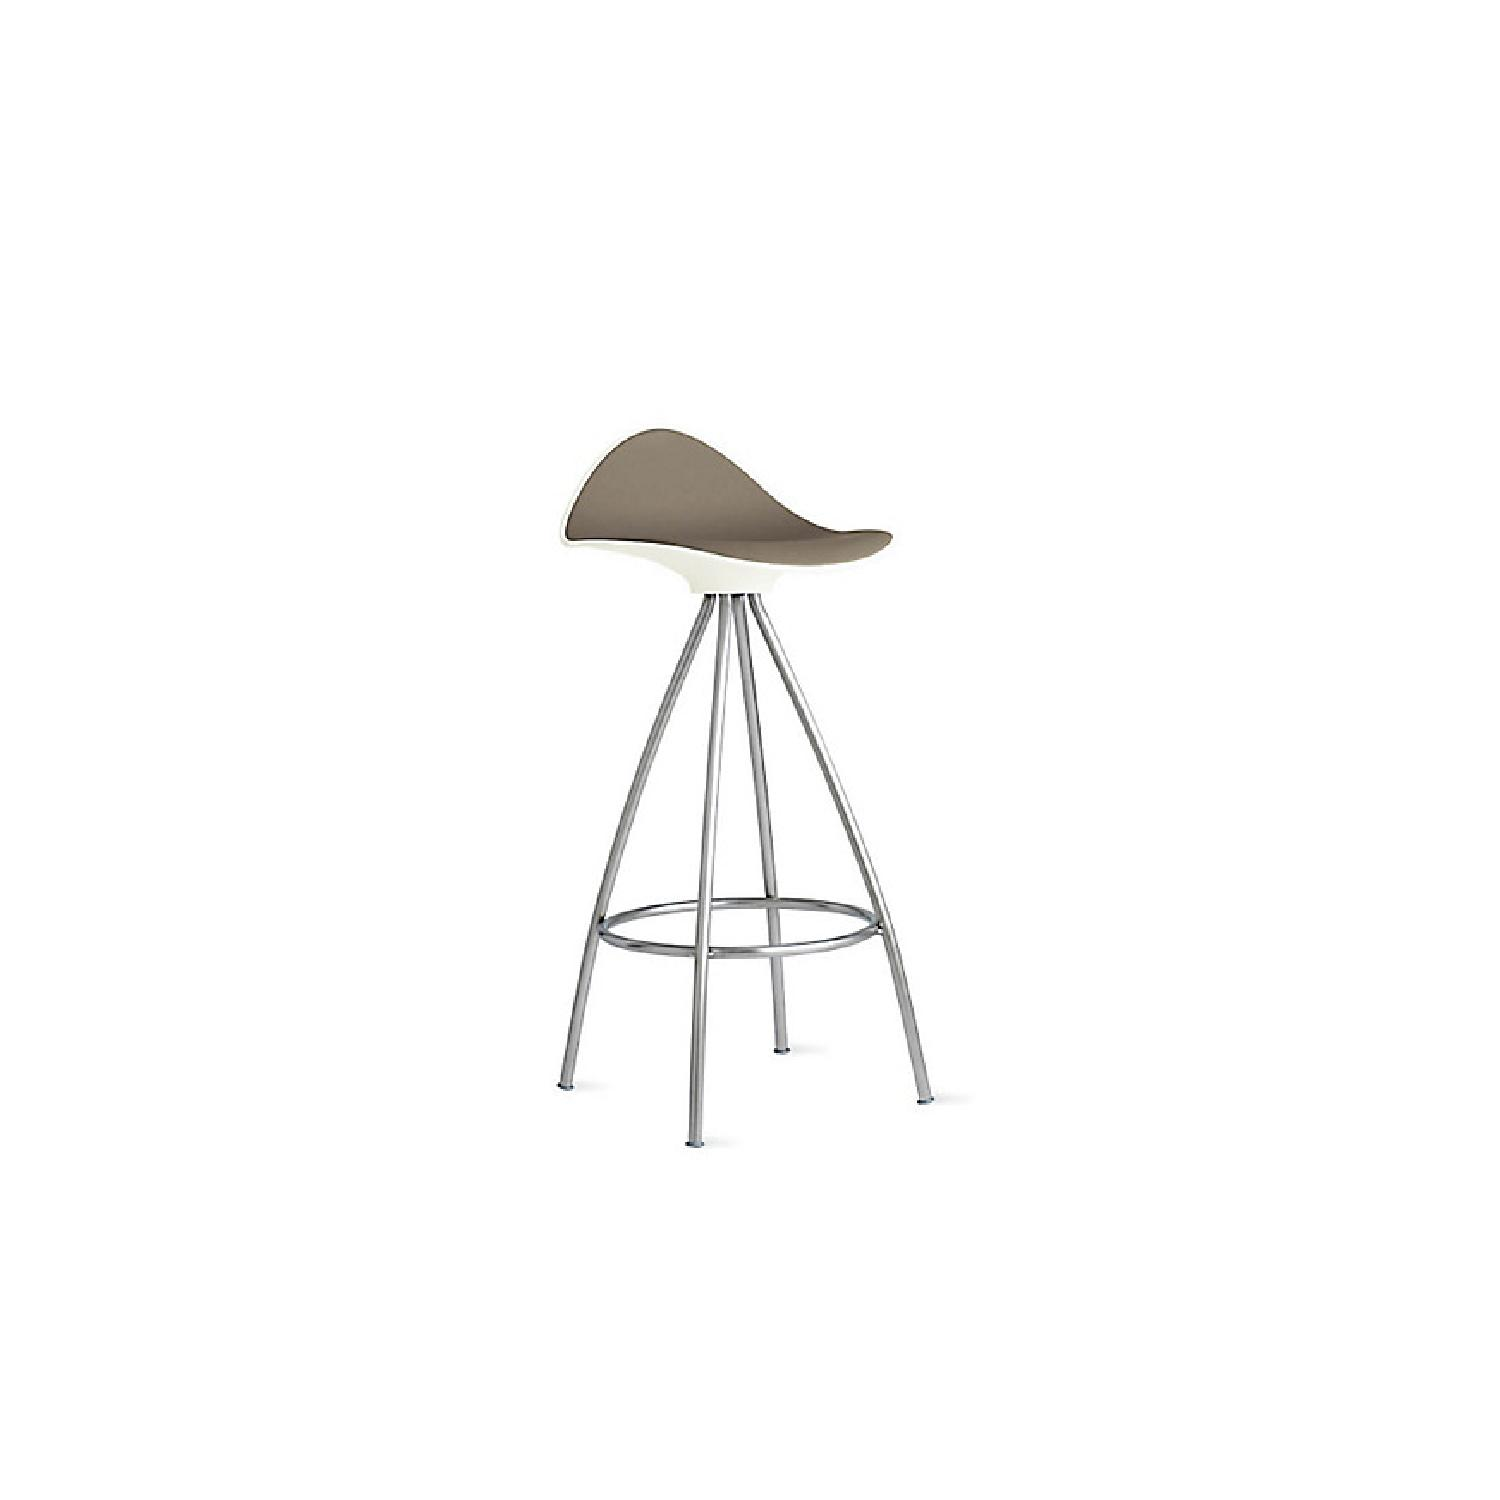 Design Within Reach Onda Counter Stools - image-0